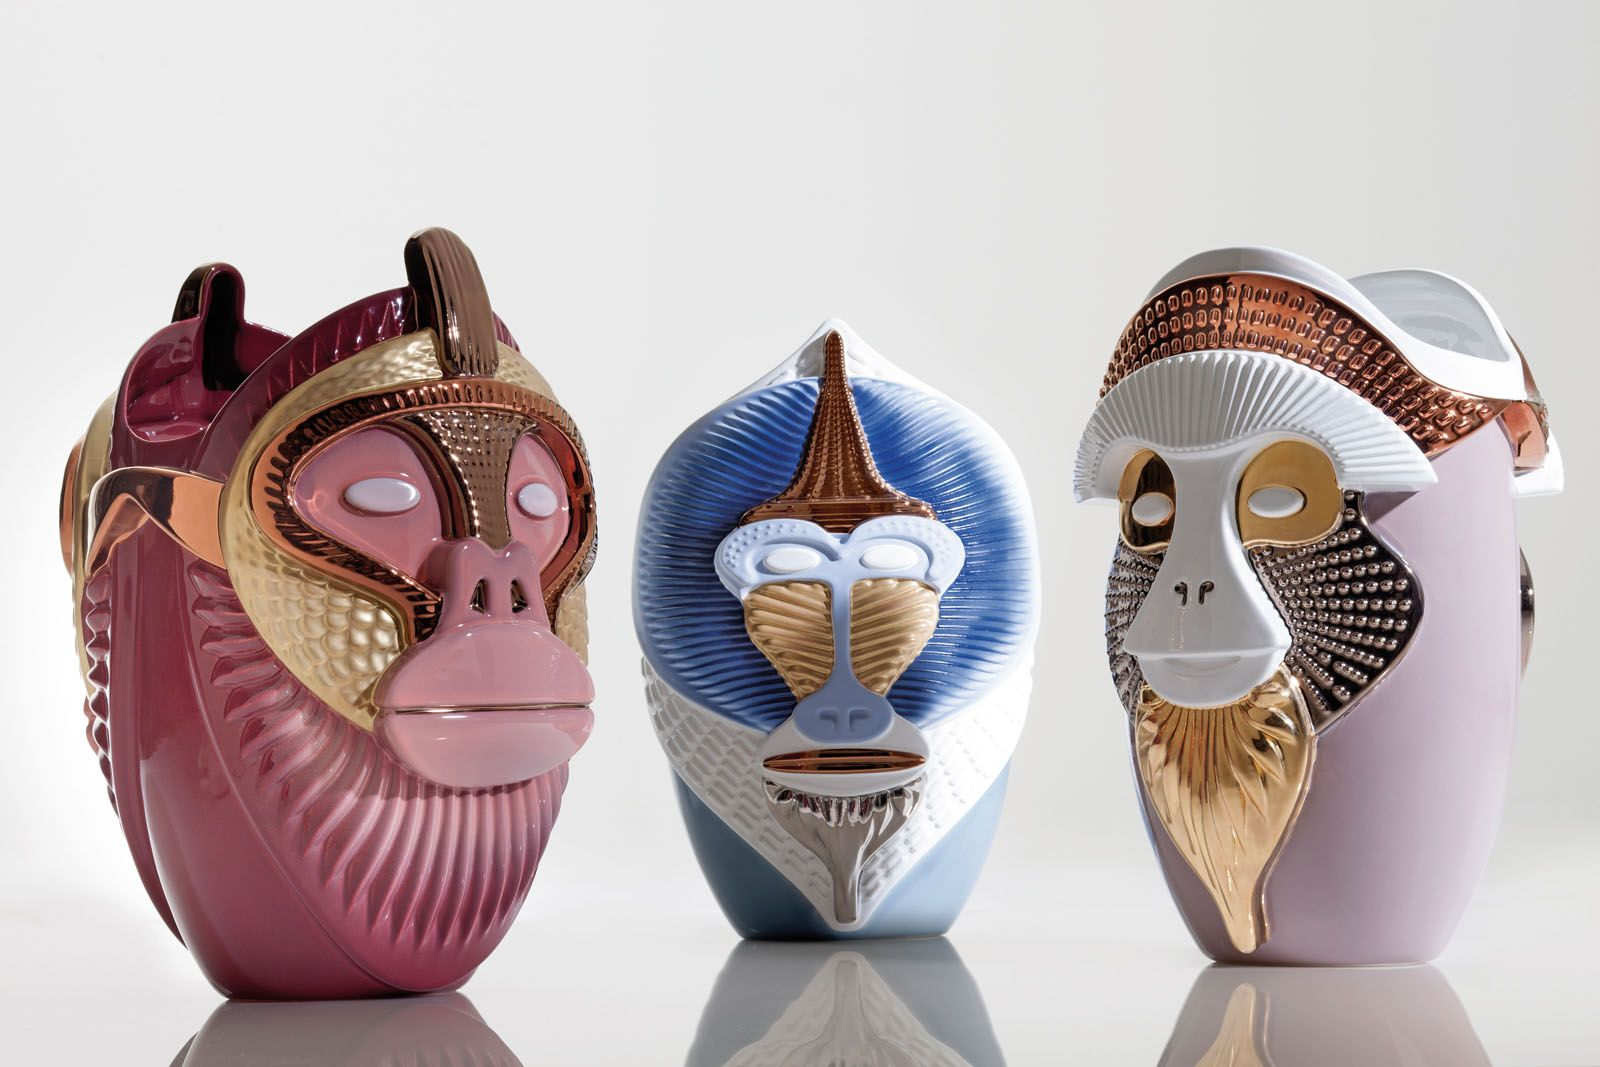 Ceramic vases from the Primate collection for Bosa; Milan-based designer and artist Elena Salmistraro